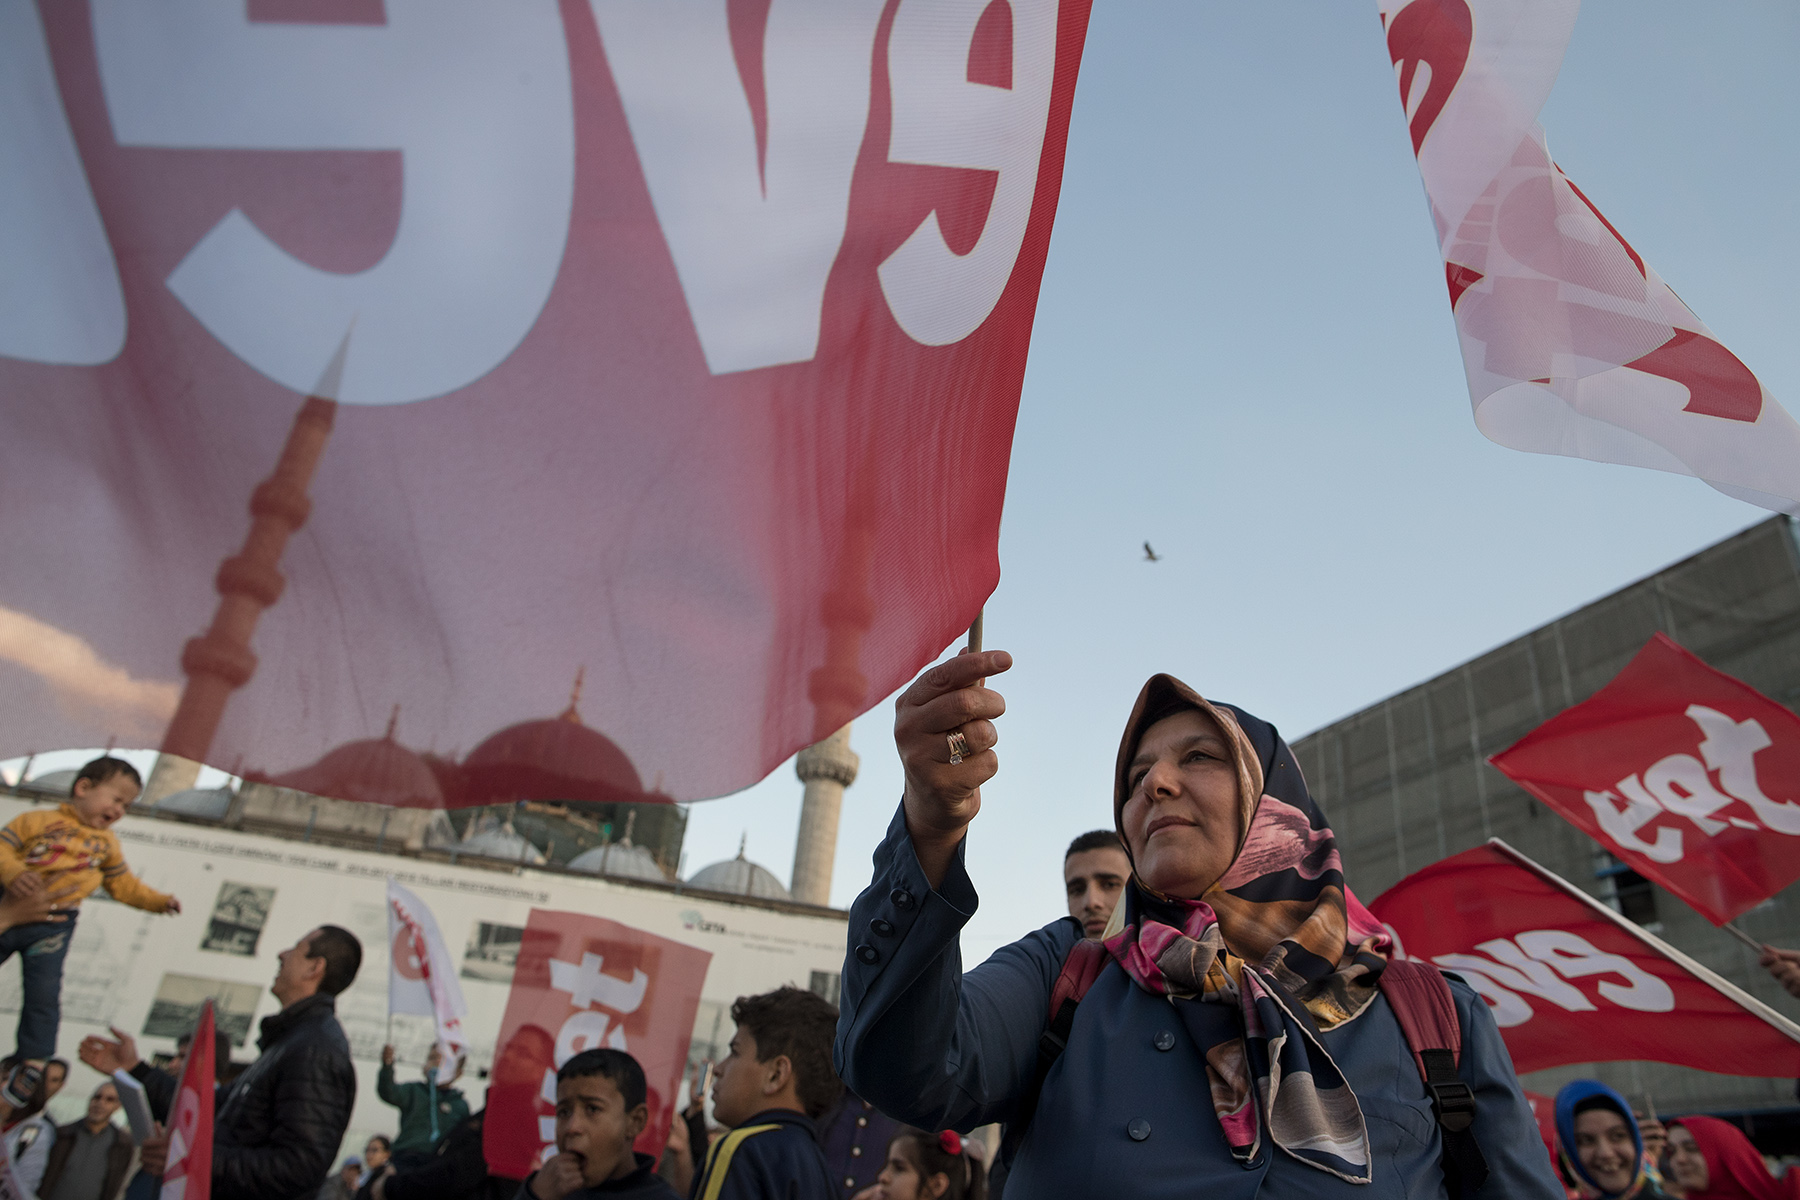 AKP supporters campaign for the Turkish referendum to say 'yes' (evet) on constitutional changes in front of Yeni Mosque in Istanbul, Turkey on April 10, 2017.